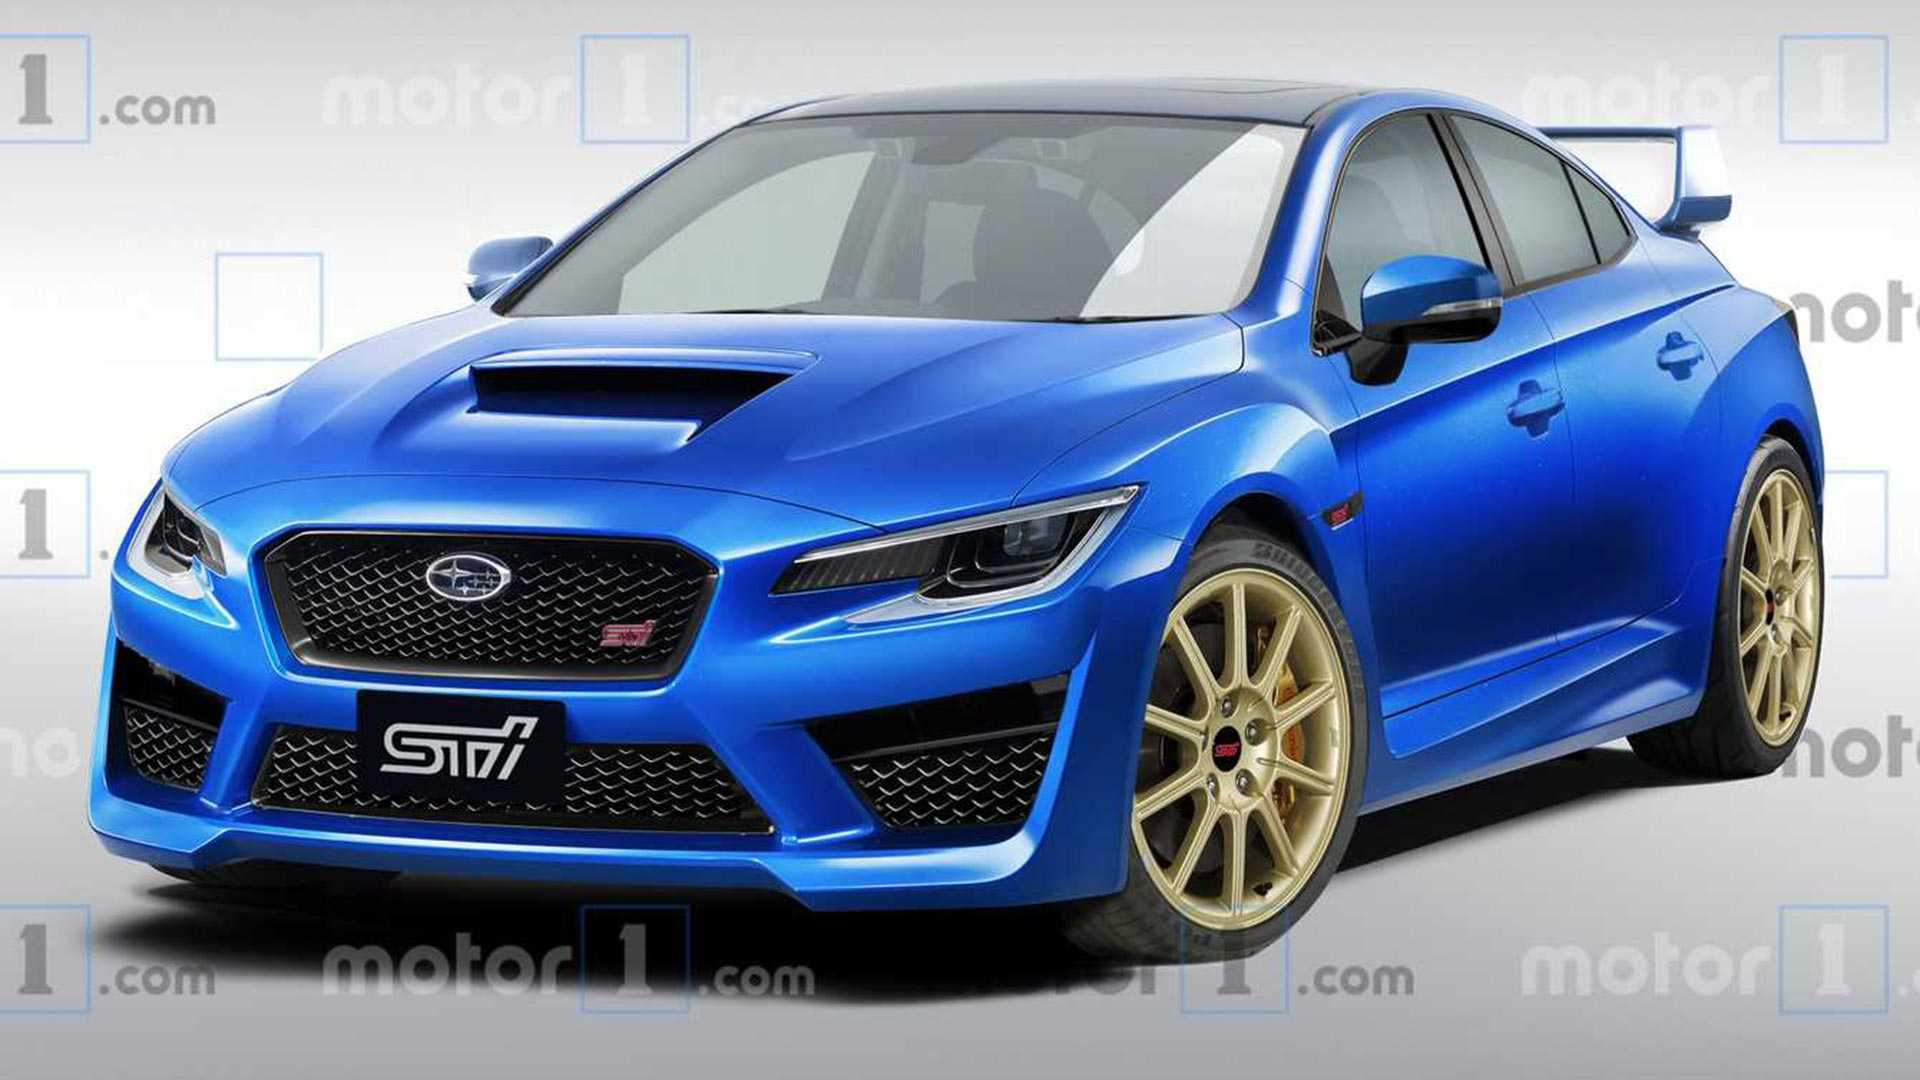 2020 Subaru Brz Sti Turbo Price and Review